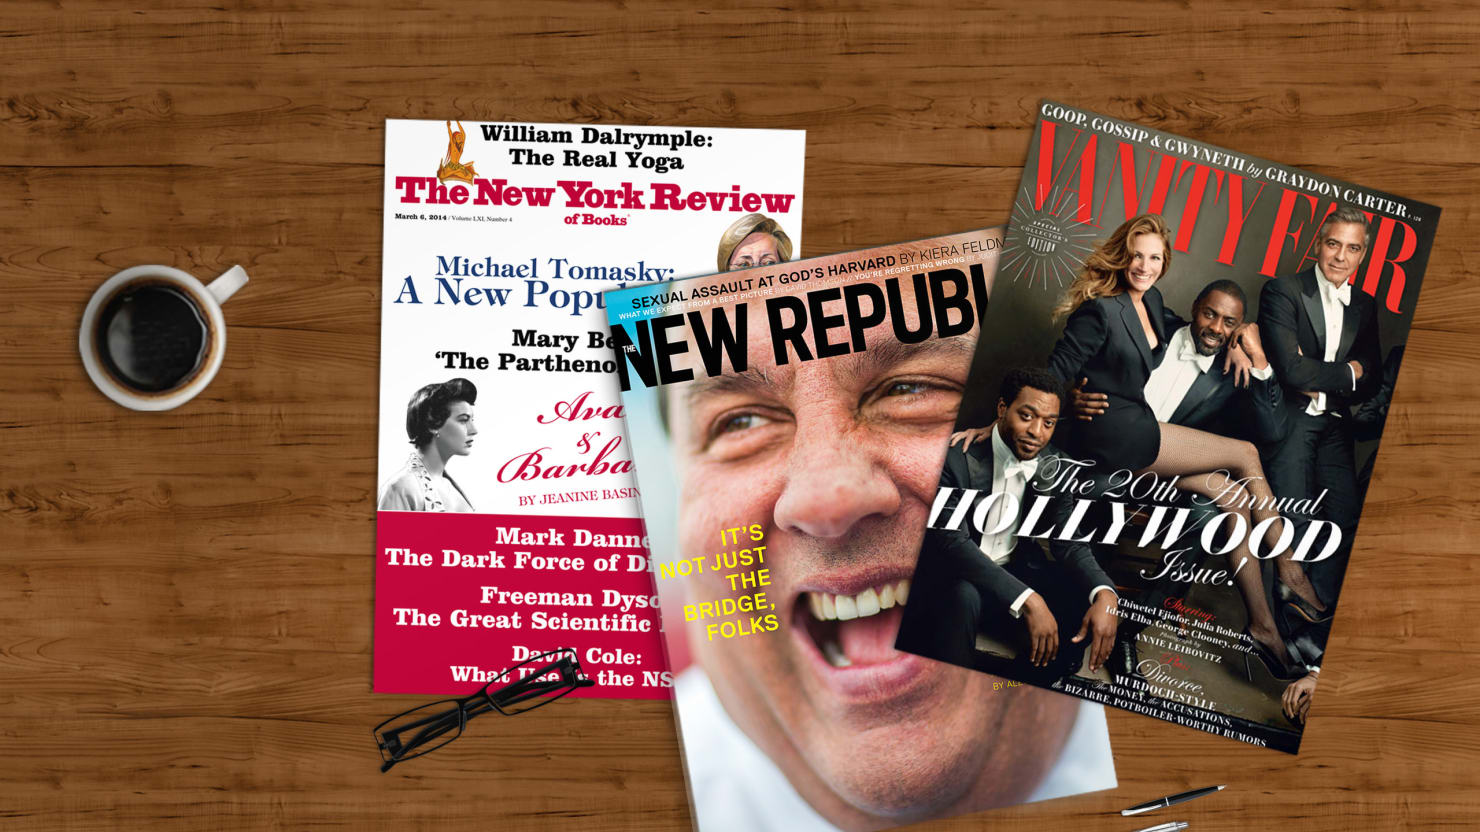 The Daily Beast's Best Longreads, February 22, 2014